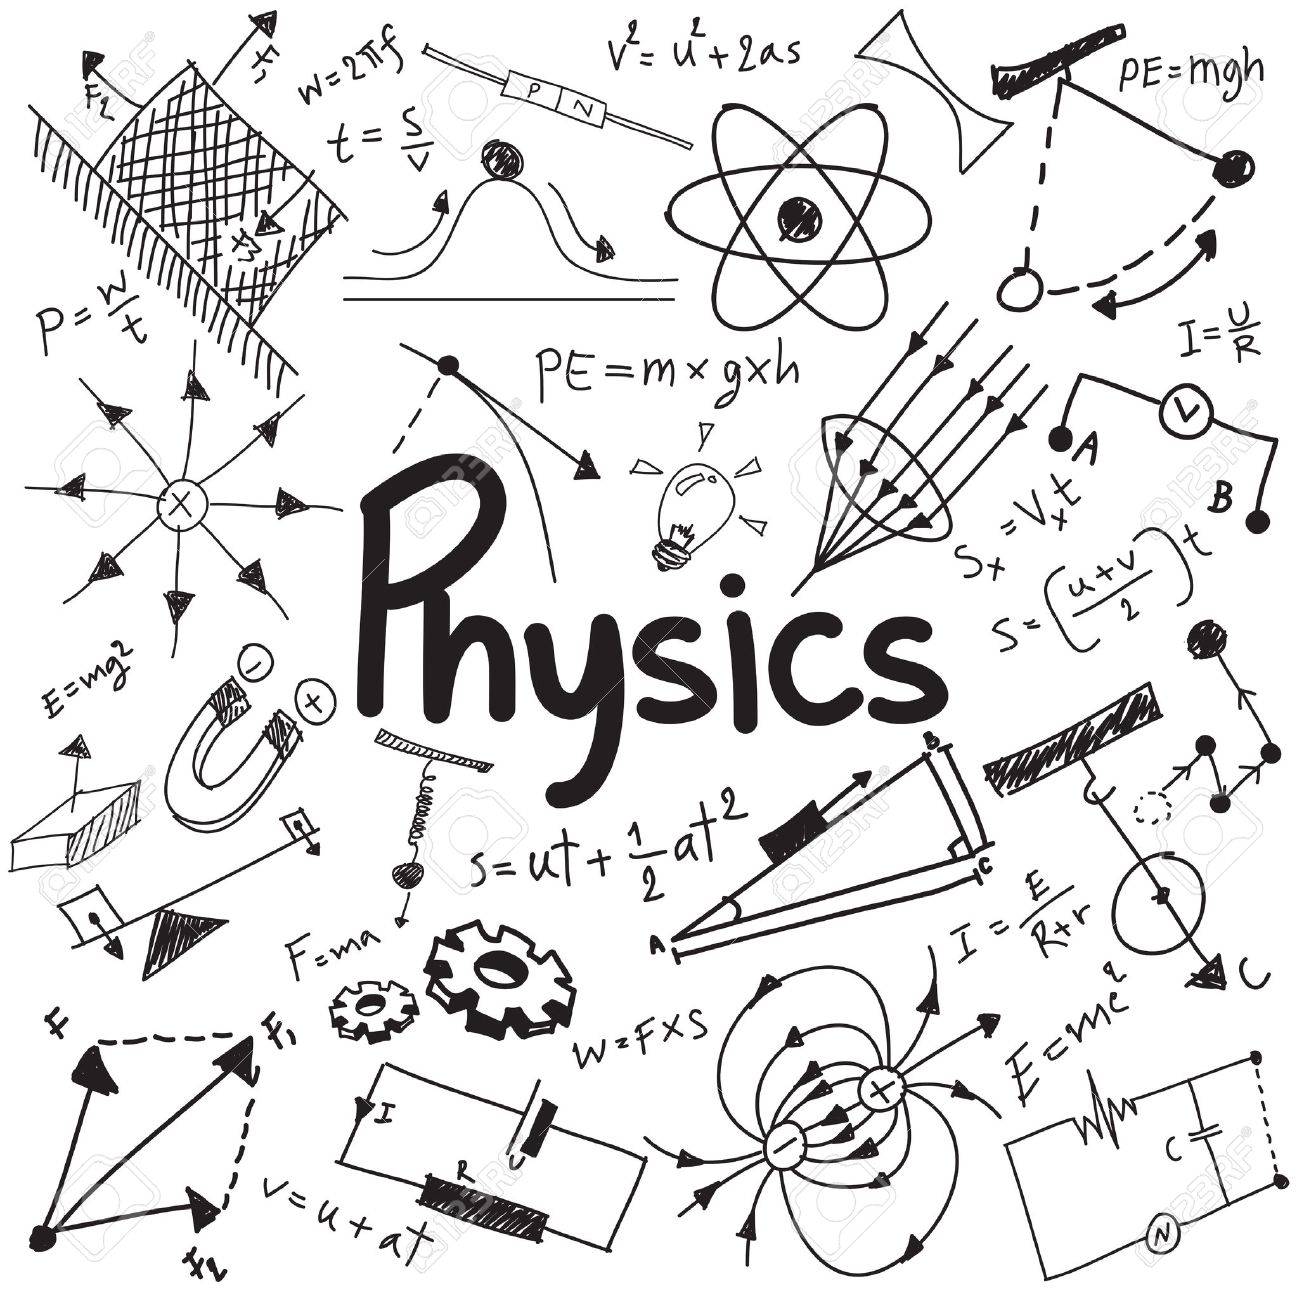 Physics science theory law and mathematical formula equation, doodle handwriting and model icon in white isolated background paper used for school education and document decoration, create by vector Stock Vector - 50745250